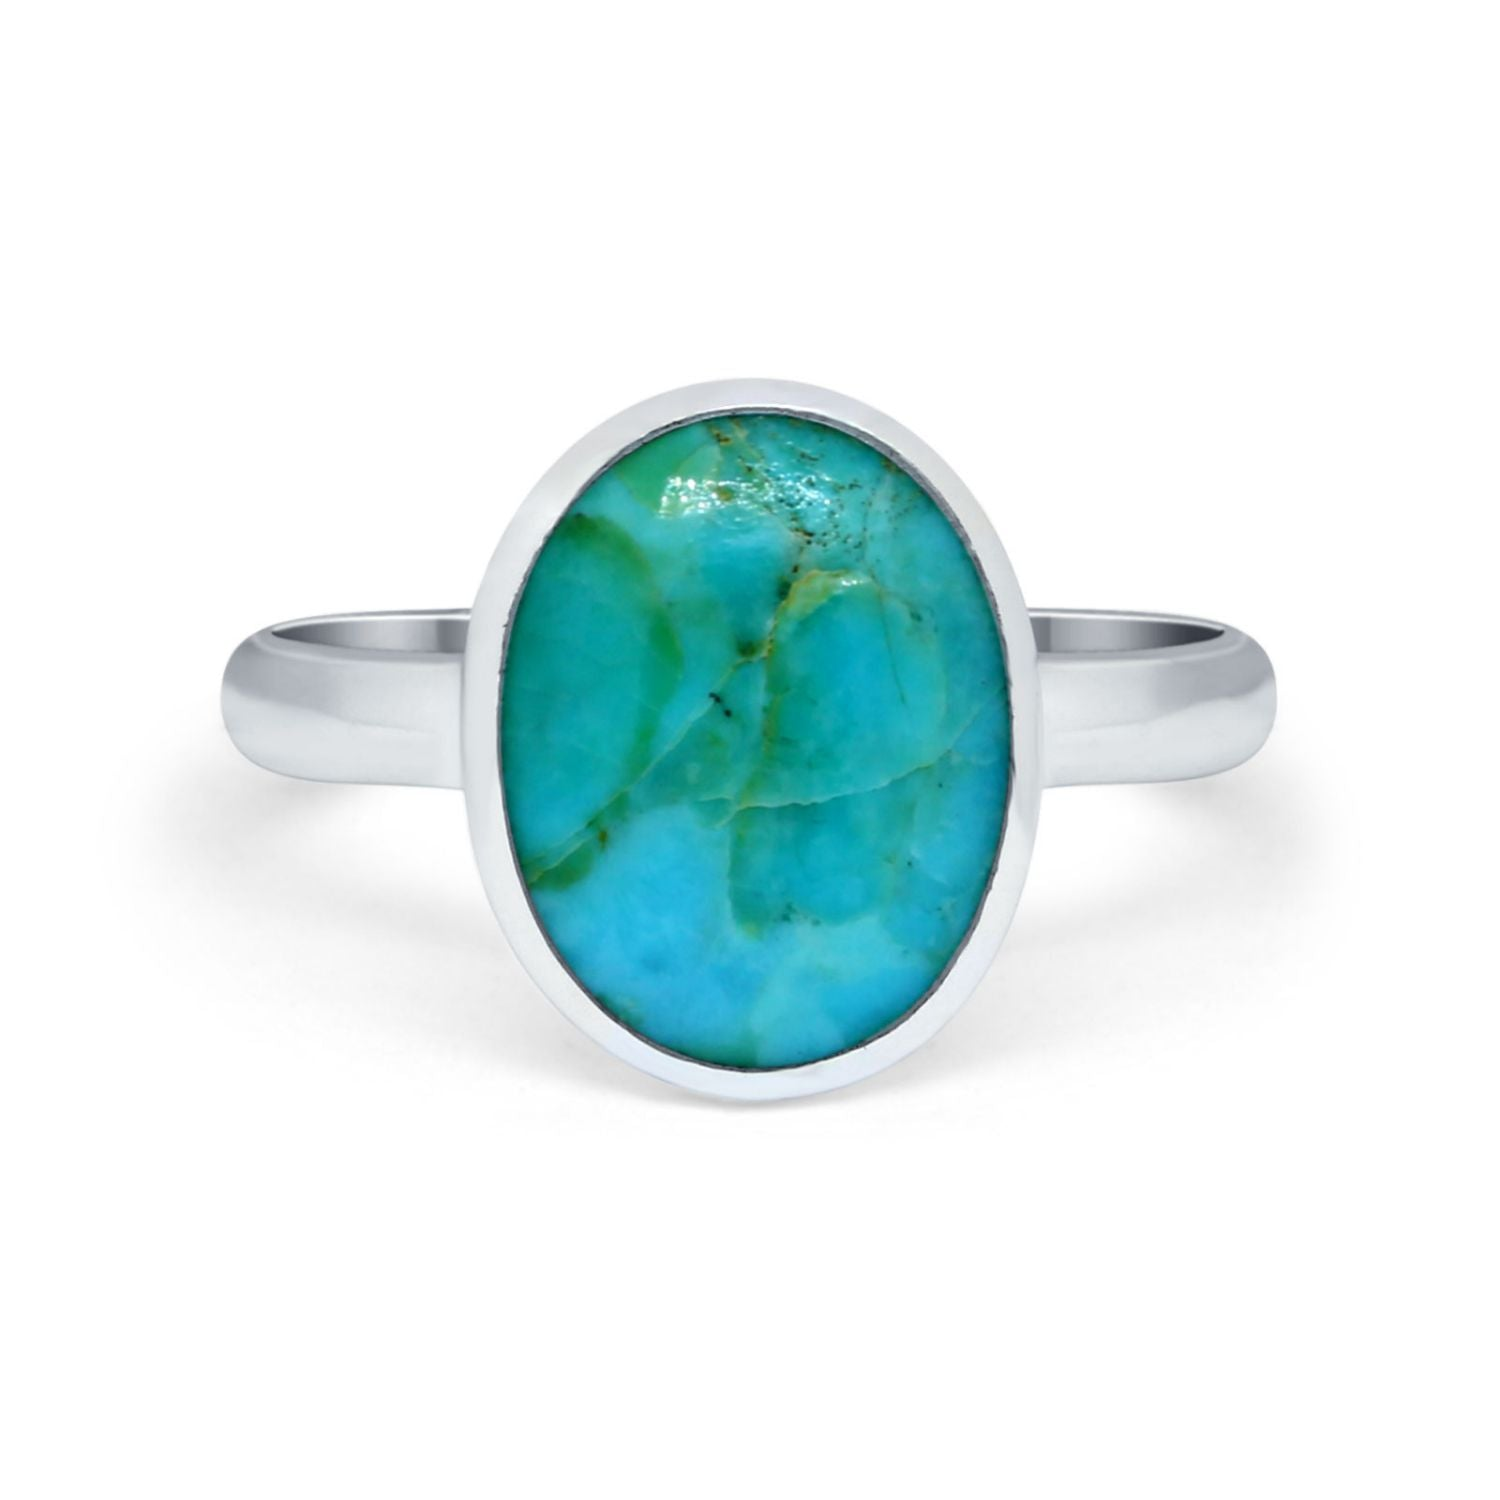 Solitaire Oval Simulated Turquoise Cubic Zirconia Ring Round 925 Sterling Silver